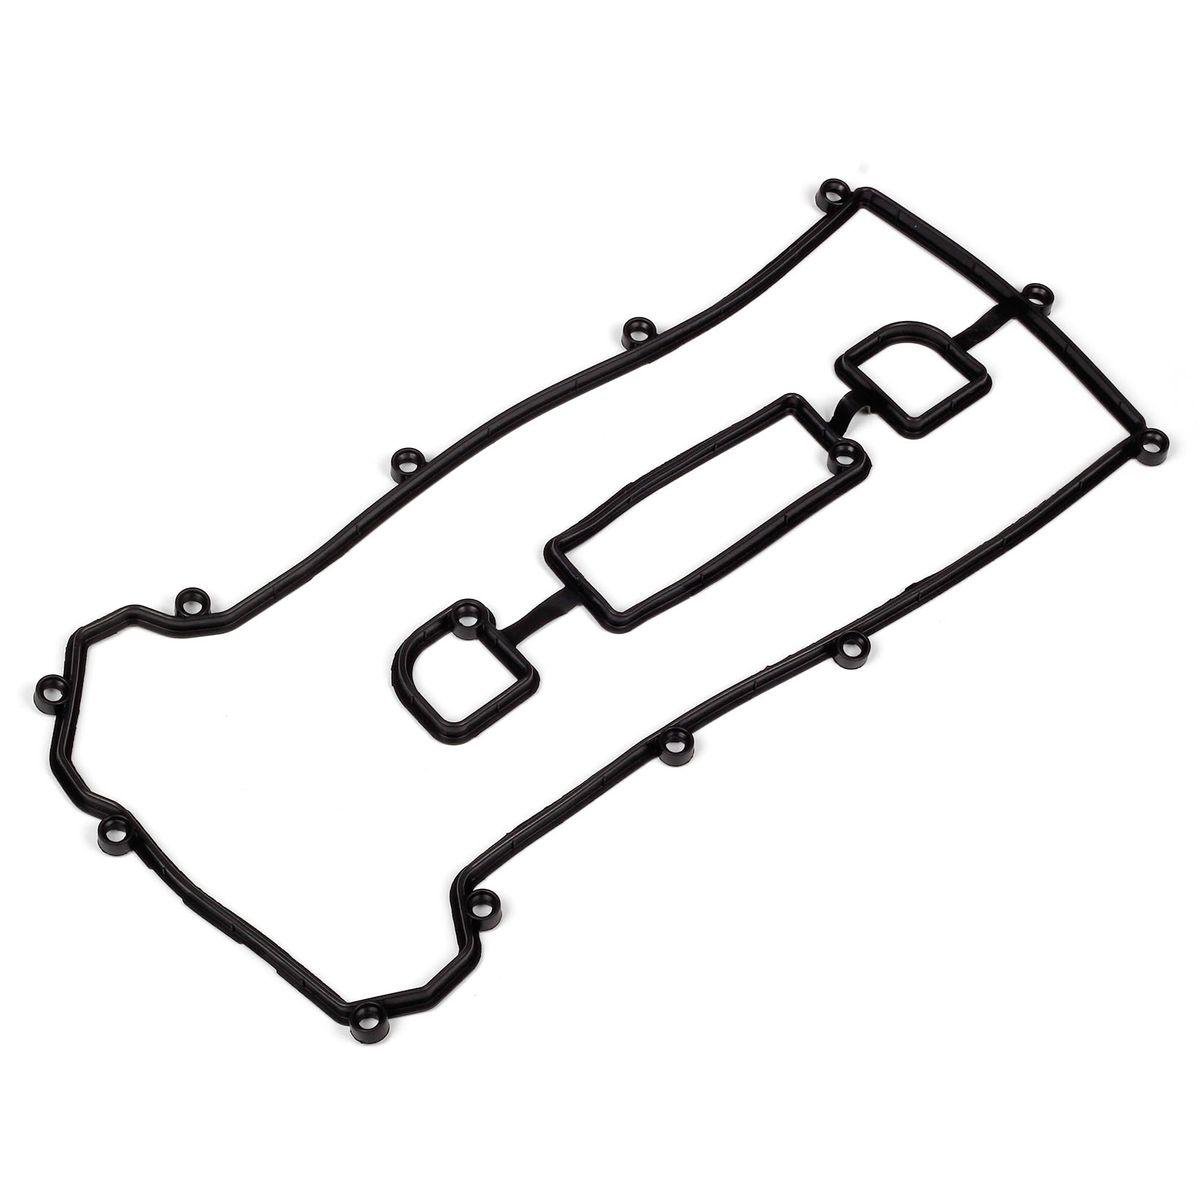 Valve Cover Gasket For 2001 2005 Mazda 6 B2300 Ford Focus2